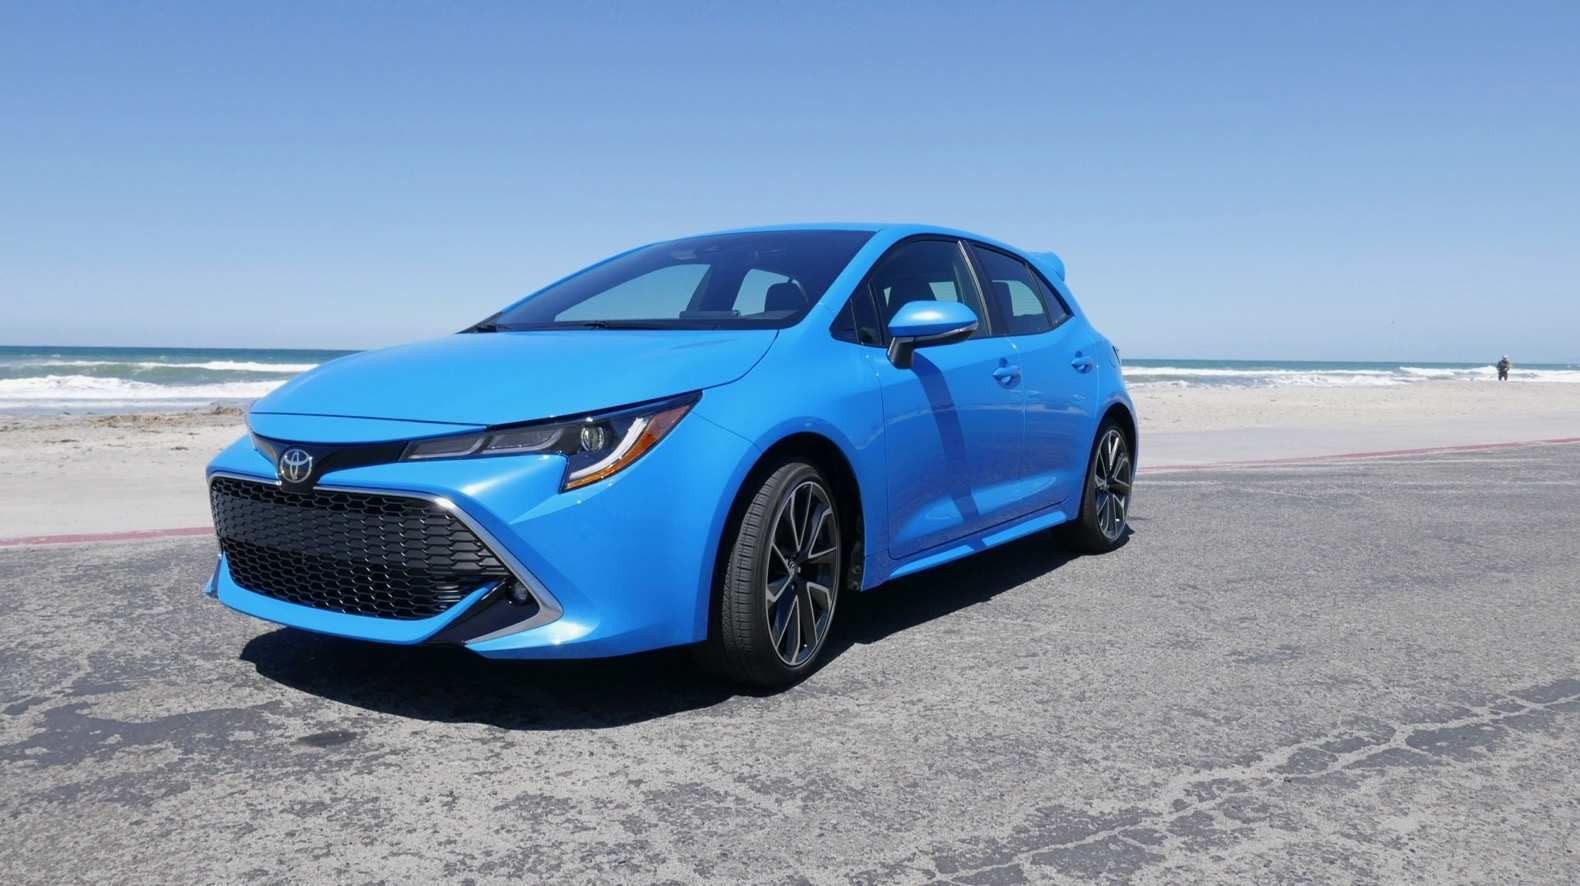 66 Concept of 2019 Toyota Corolla Hatchback Review Release for 2019 Toyota Corolla Hatchback Review